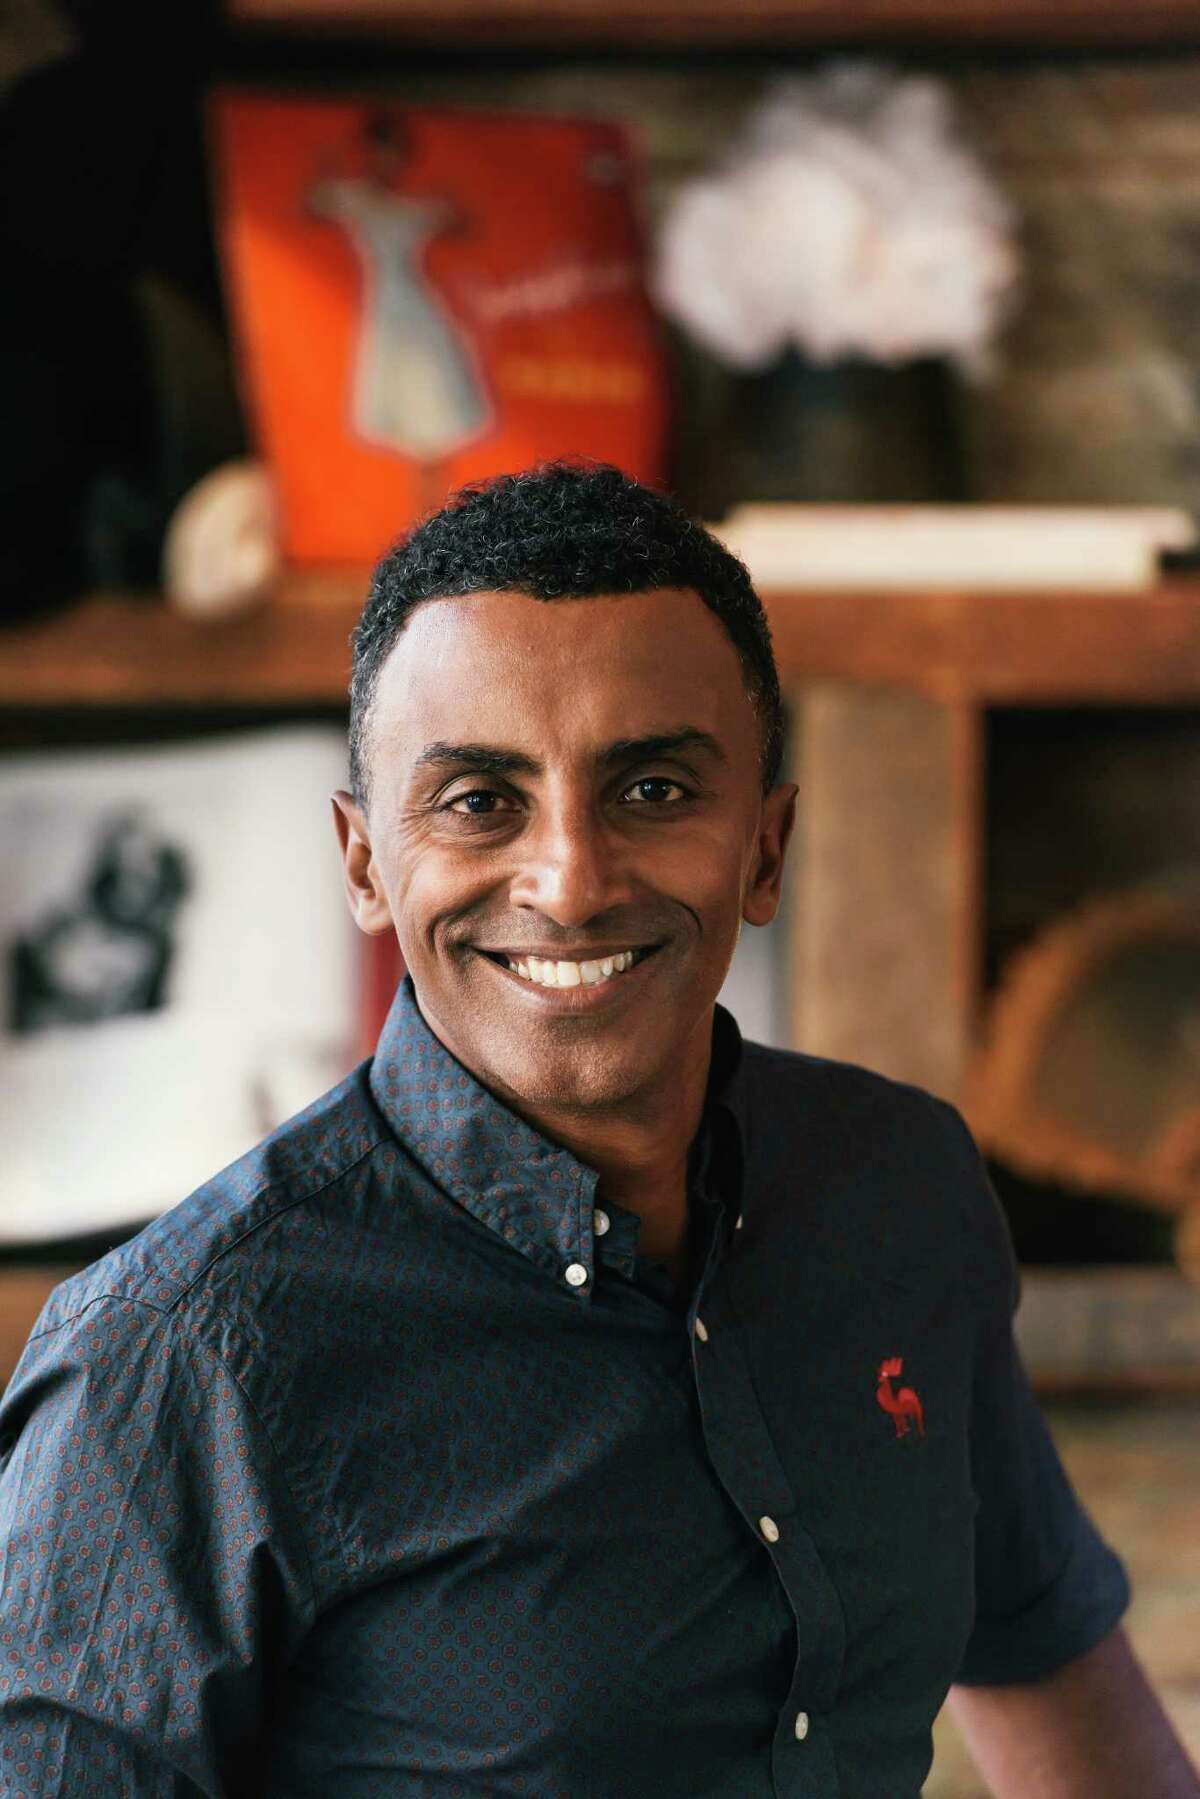 Marcus Samuelsson spoke about the culinary traditions that shape his recipes during a brunch at The Pass & Provisions.